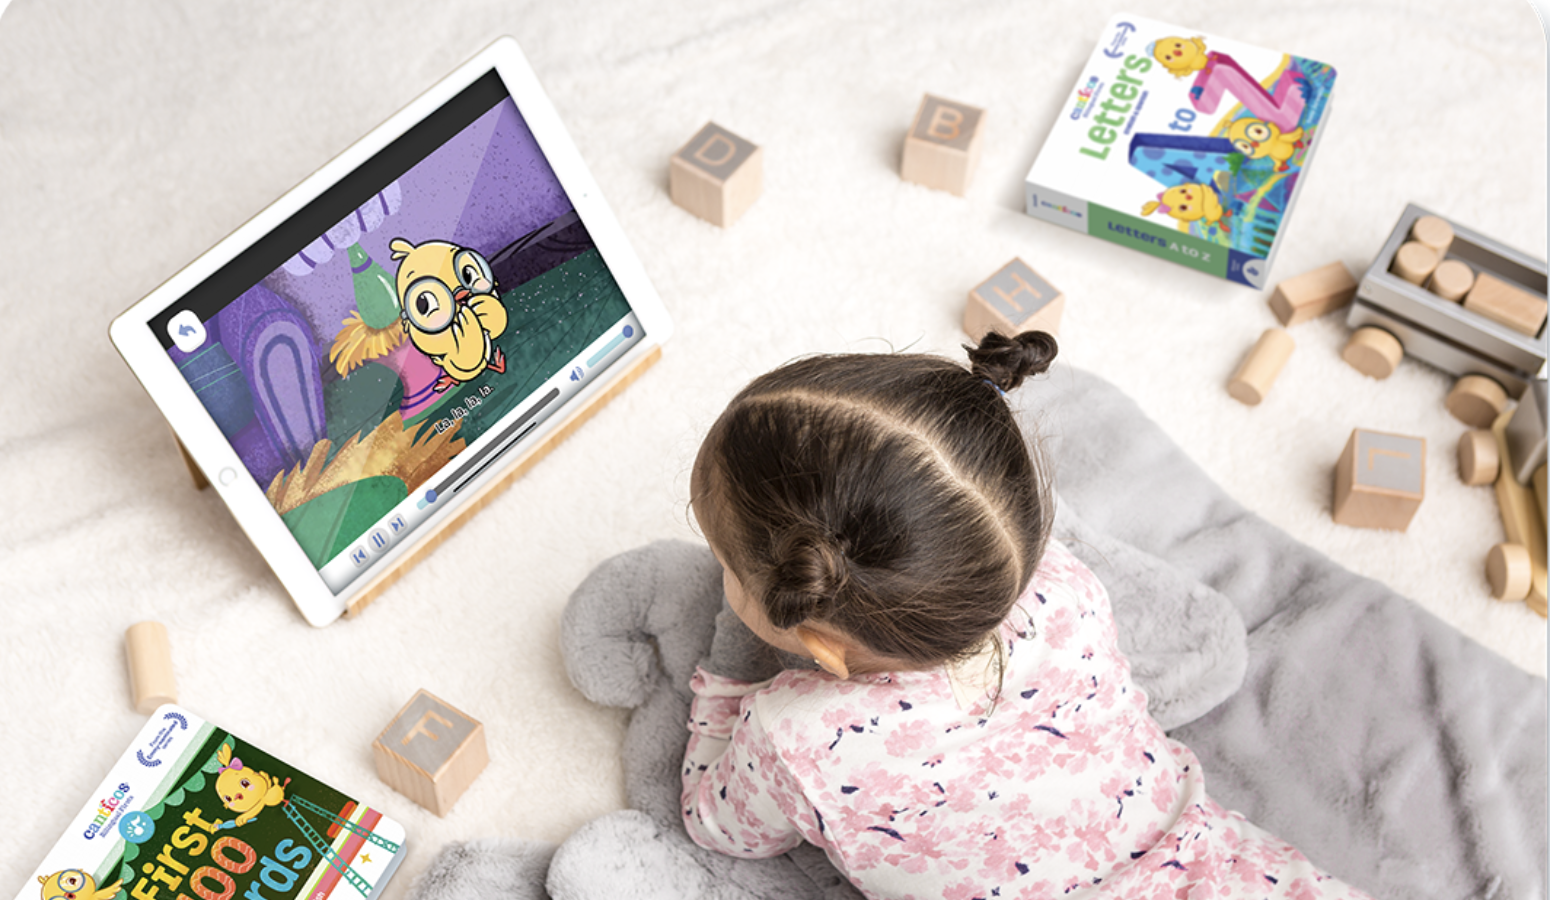 Encantos' Learning App Will Be Powered by a Network of Creative Educator-Authors